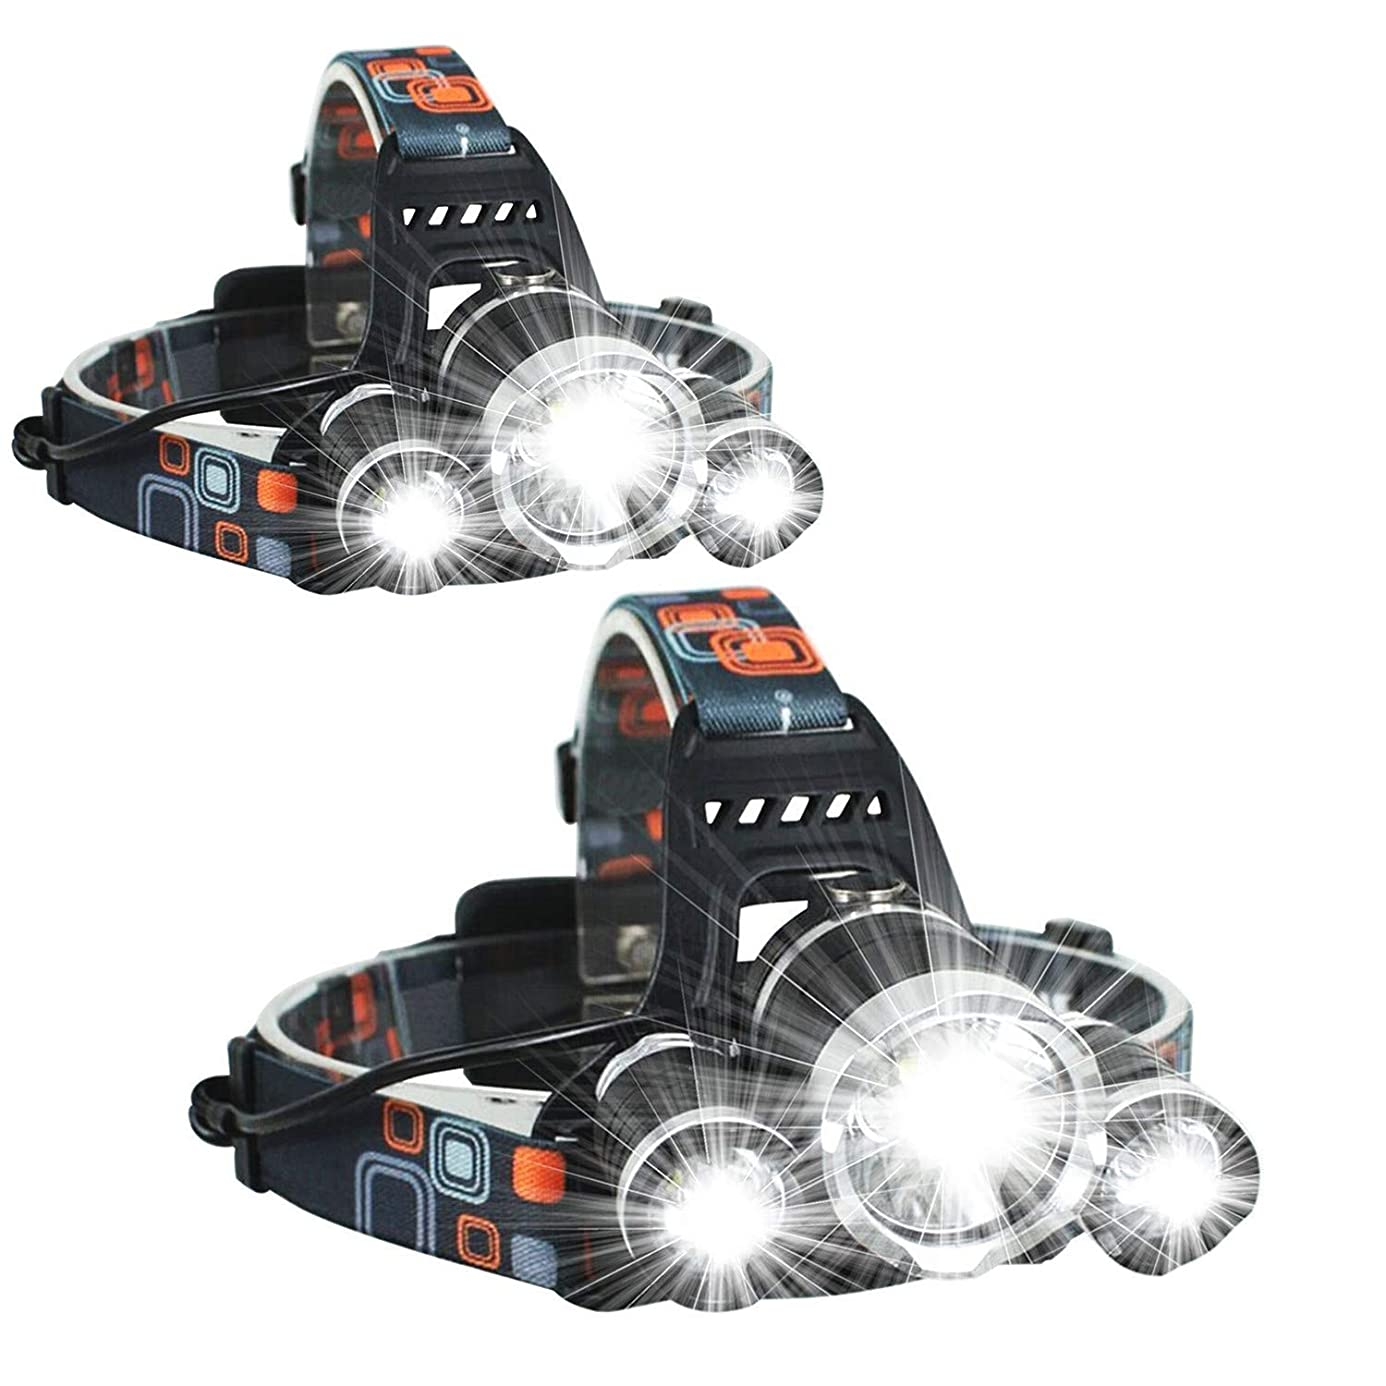 UVER 2 Pack Brightest and Best High Powered Lumen Bright Headlight Headlamp Flashlight Torch 3 XM-L2 T6 LED with Rechargeable Batteries and Wall Charger for Hiking Camping Riding Fishing Hunting